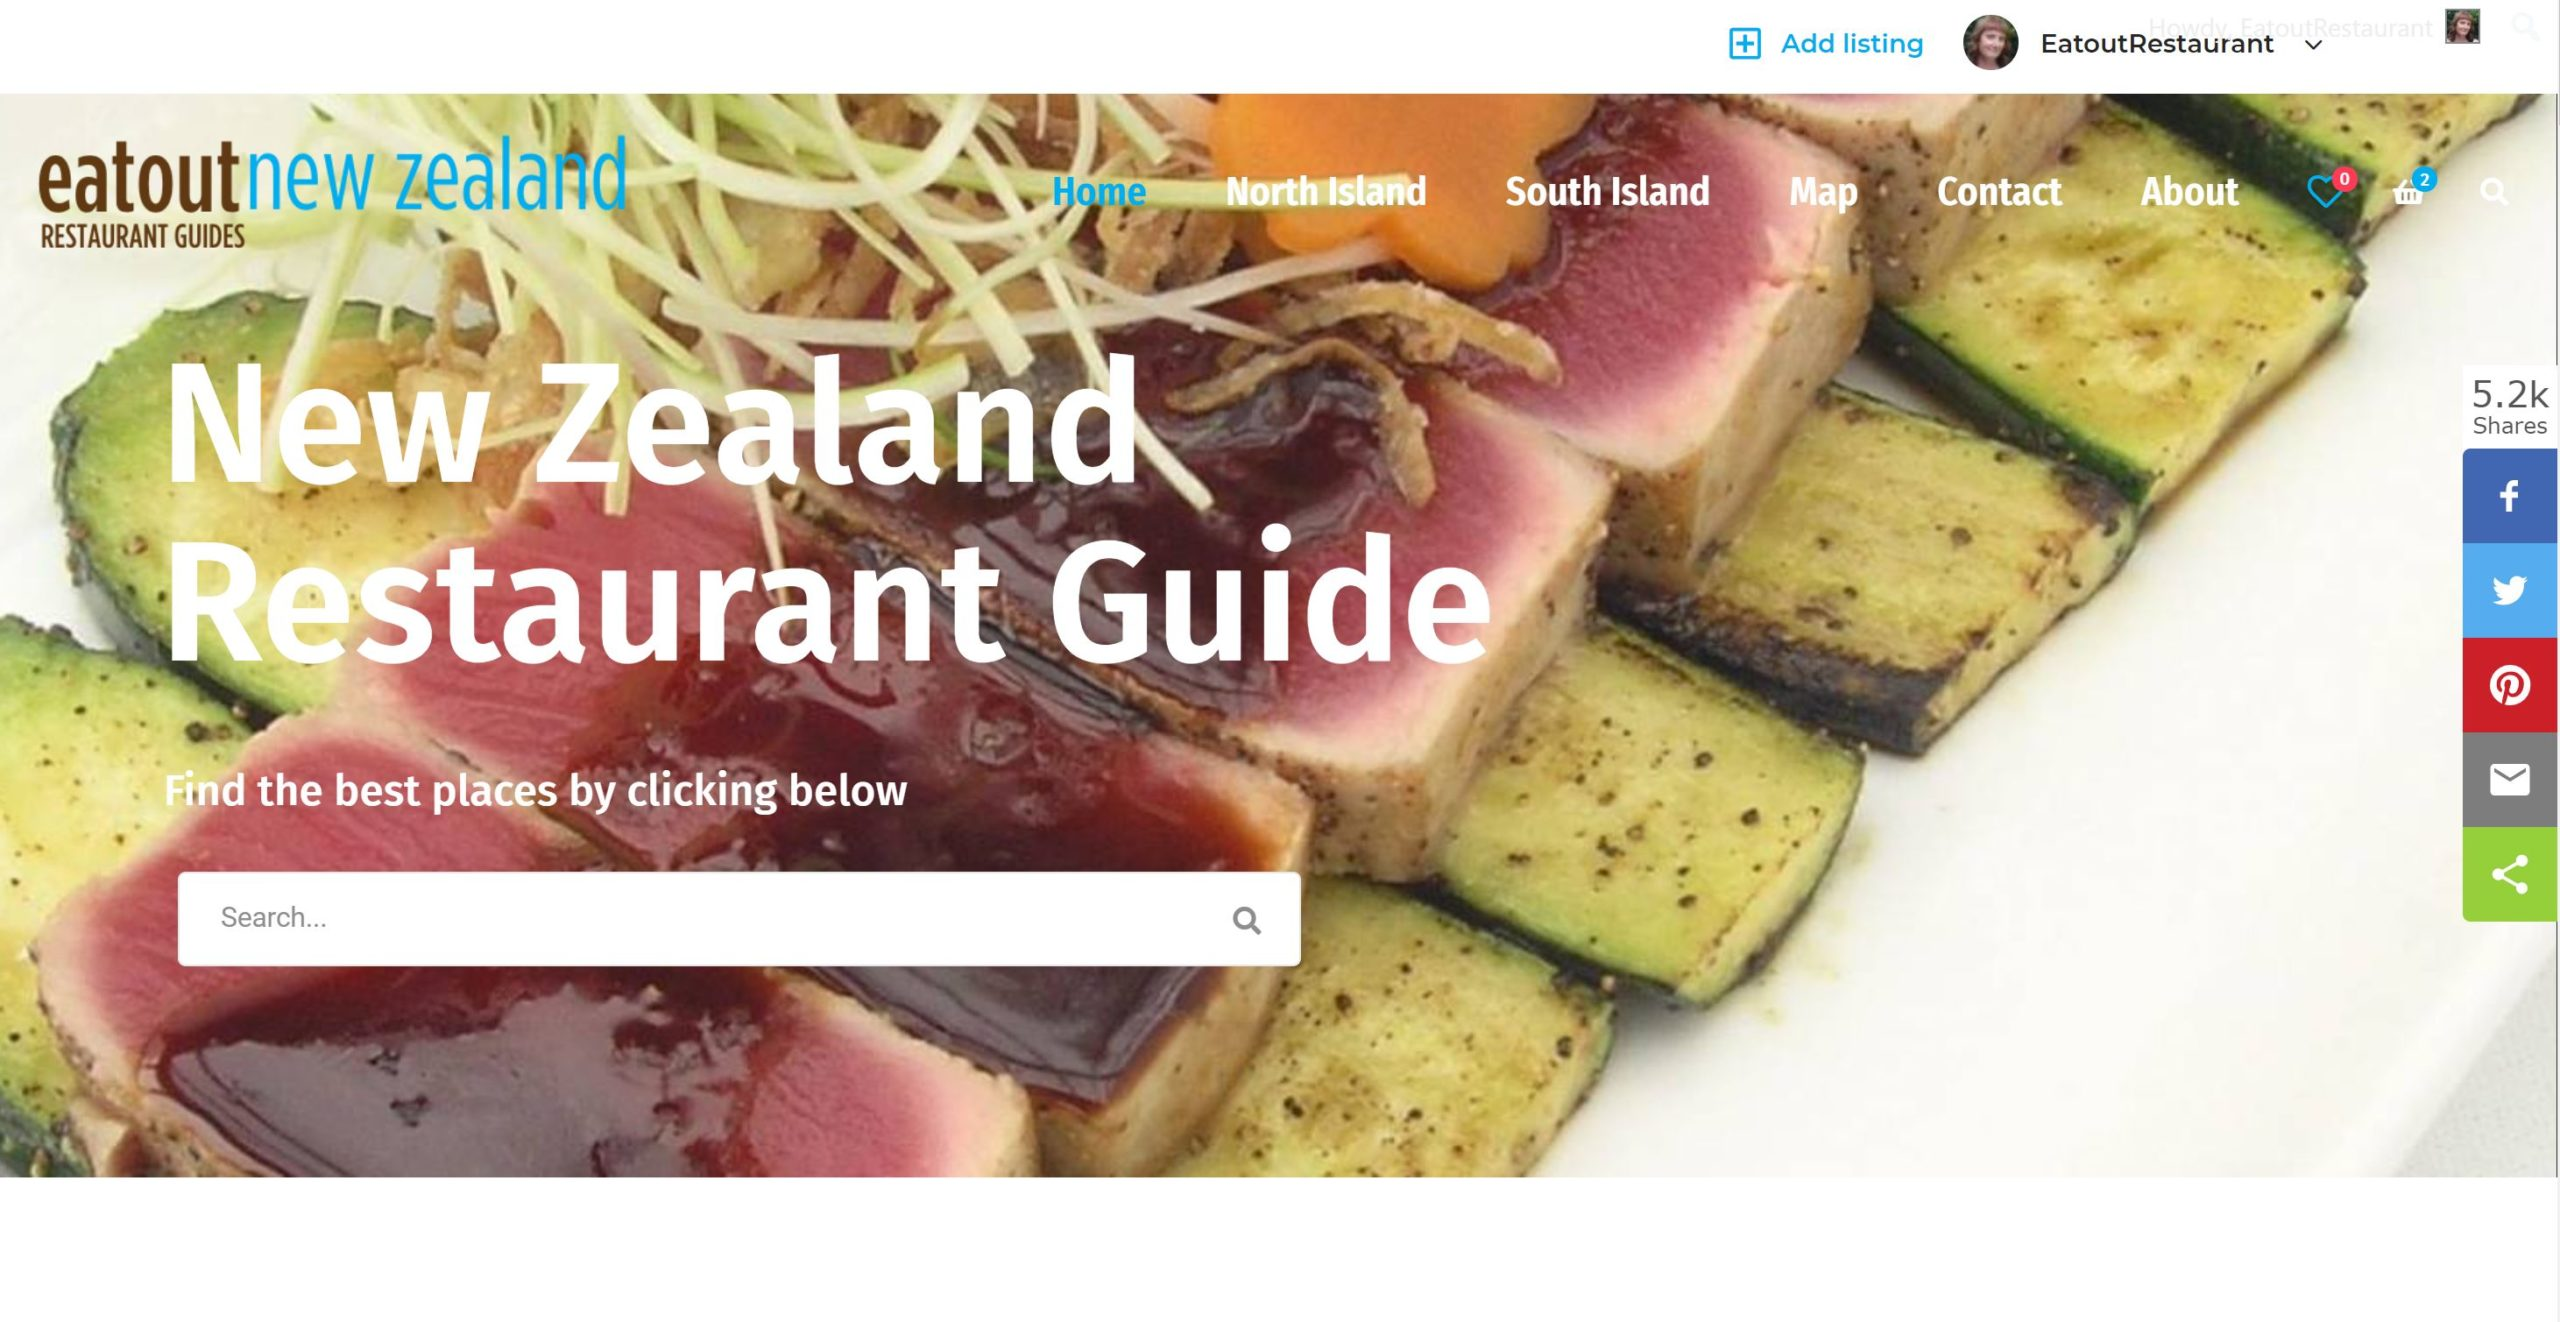 Eatout Restaurant Guide